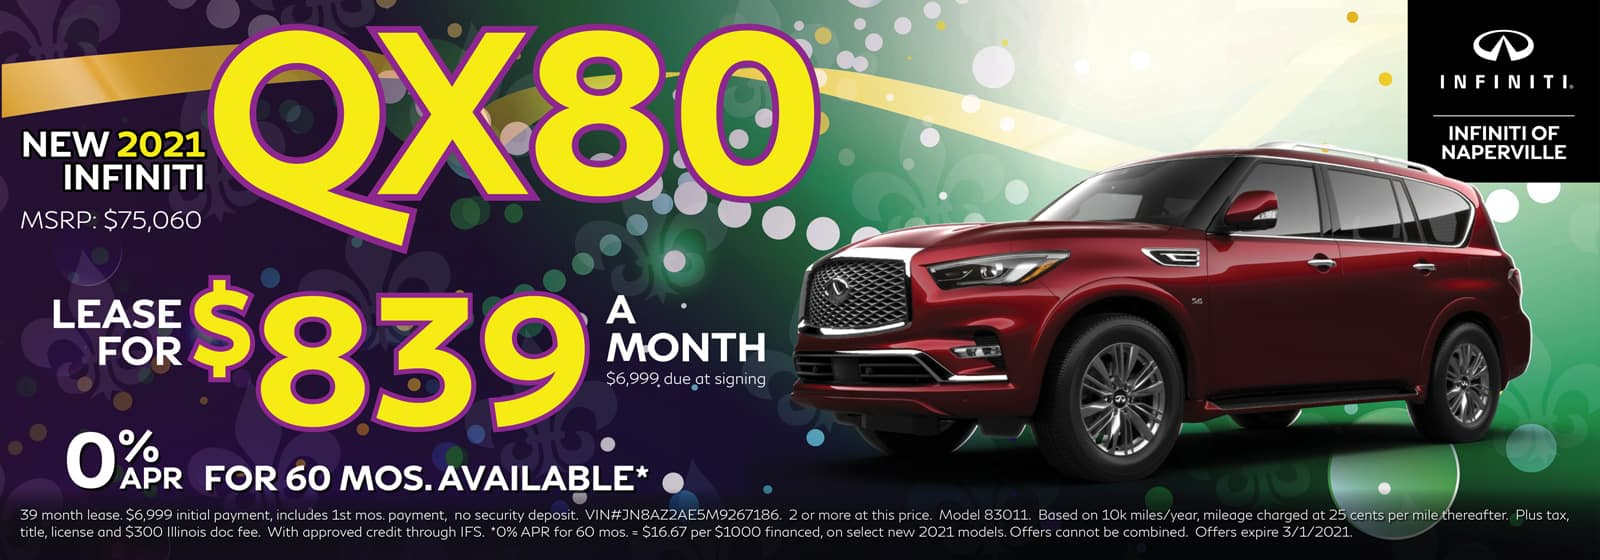 2021 INFINITI QX80 lease offer, $839/mo for 39 Months | Naperville, IL